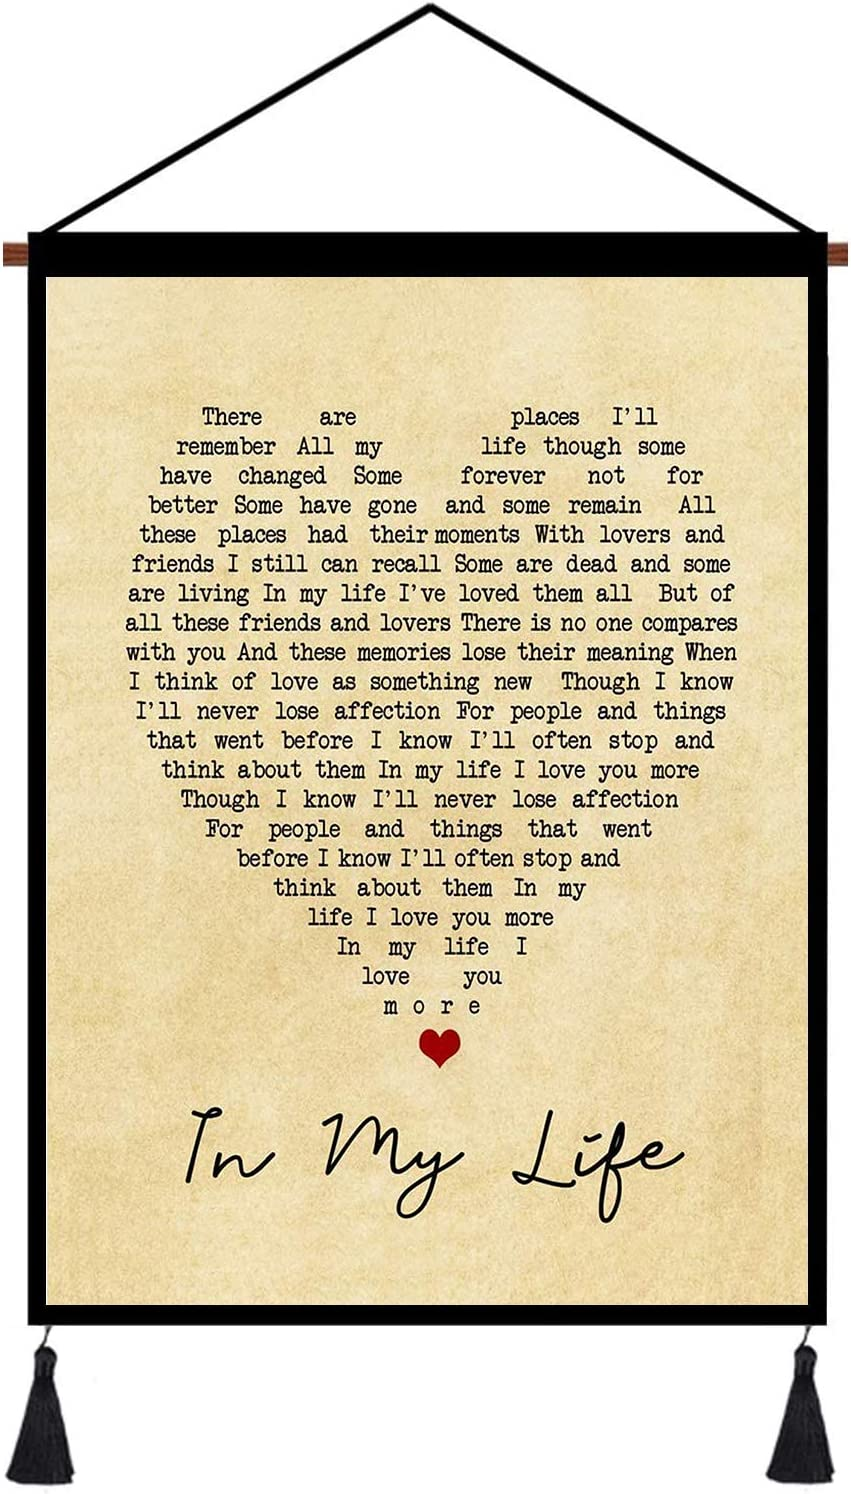 kasader in My Life Heart Unique Quote Song Lyric Retro Wall Art Gift Print Canvas Reel Home Decor 18x12in